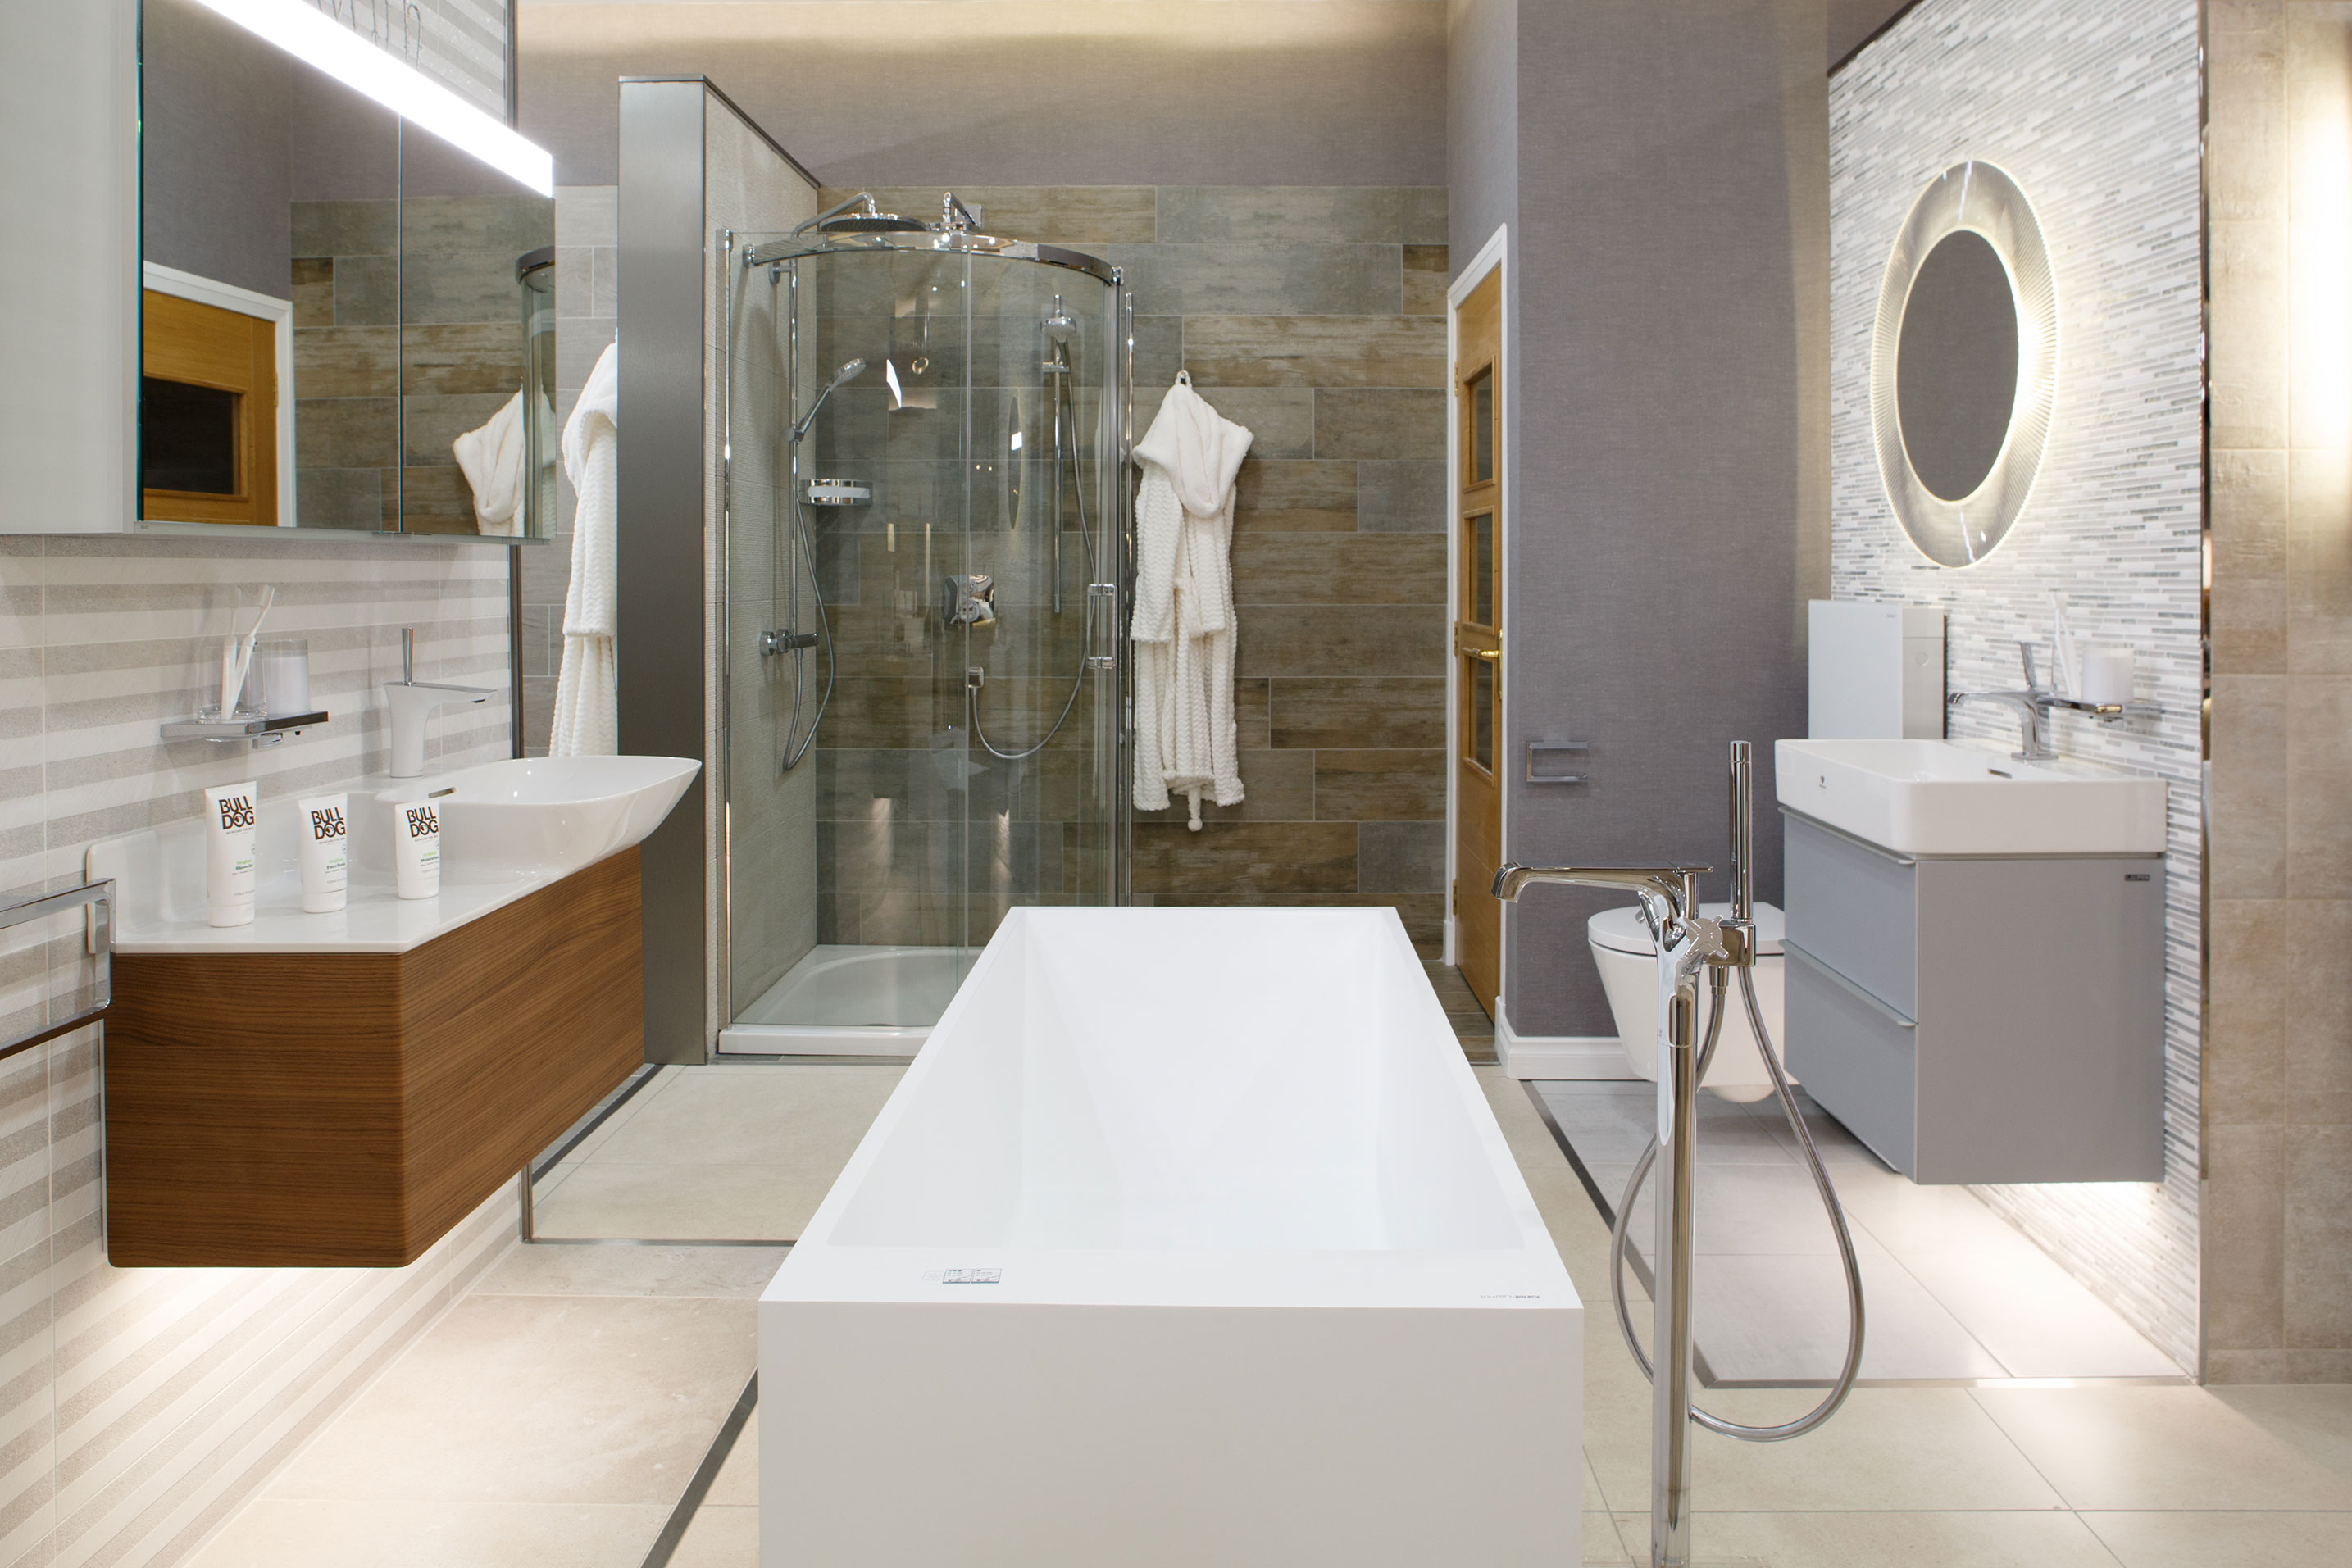 Bathroom Stores Melbourne Bathroom Showroom Affordable Showrooms Melbourne With